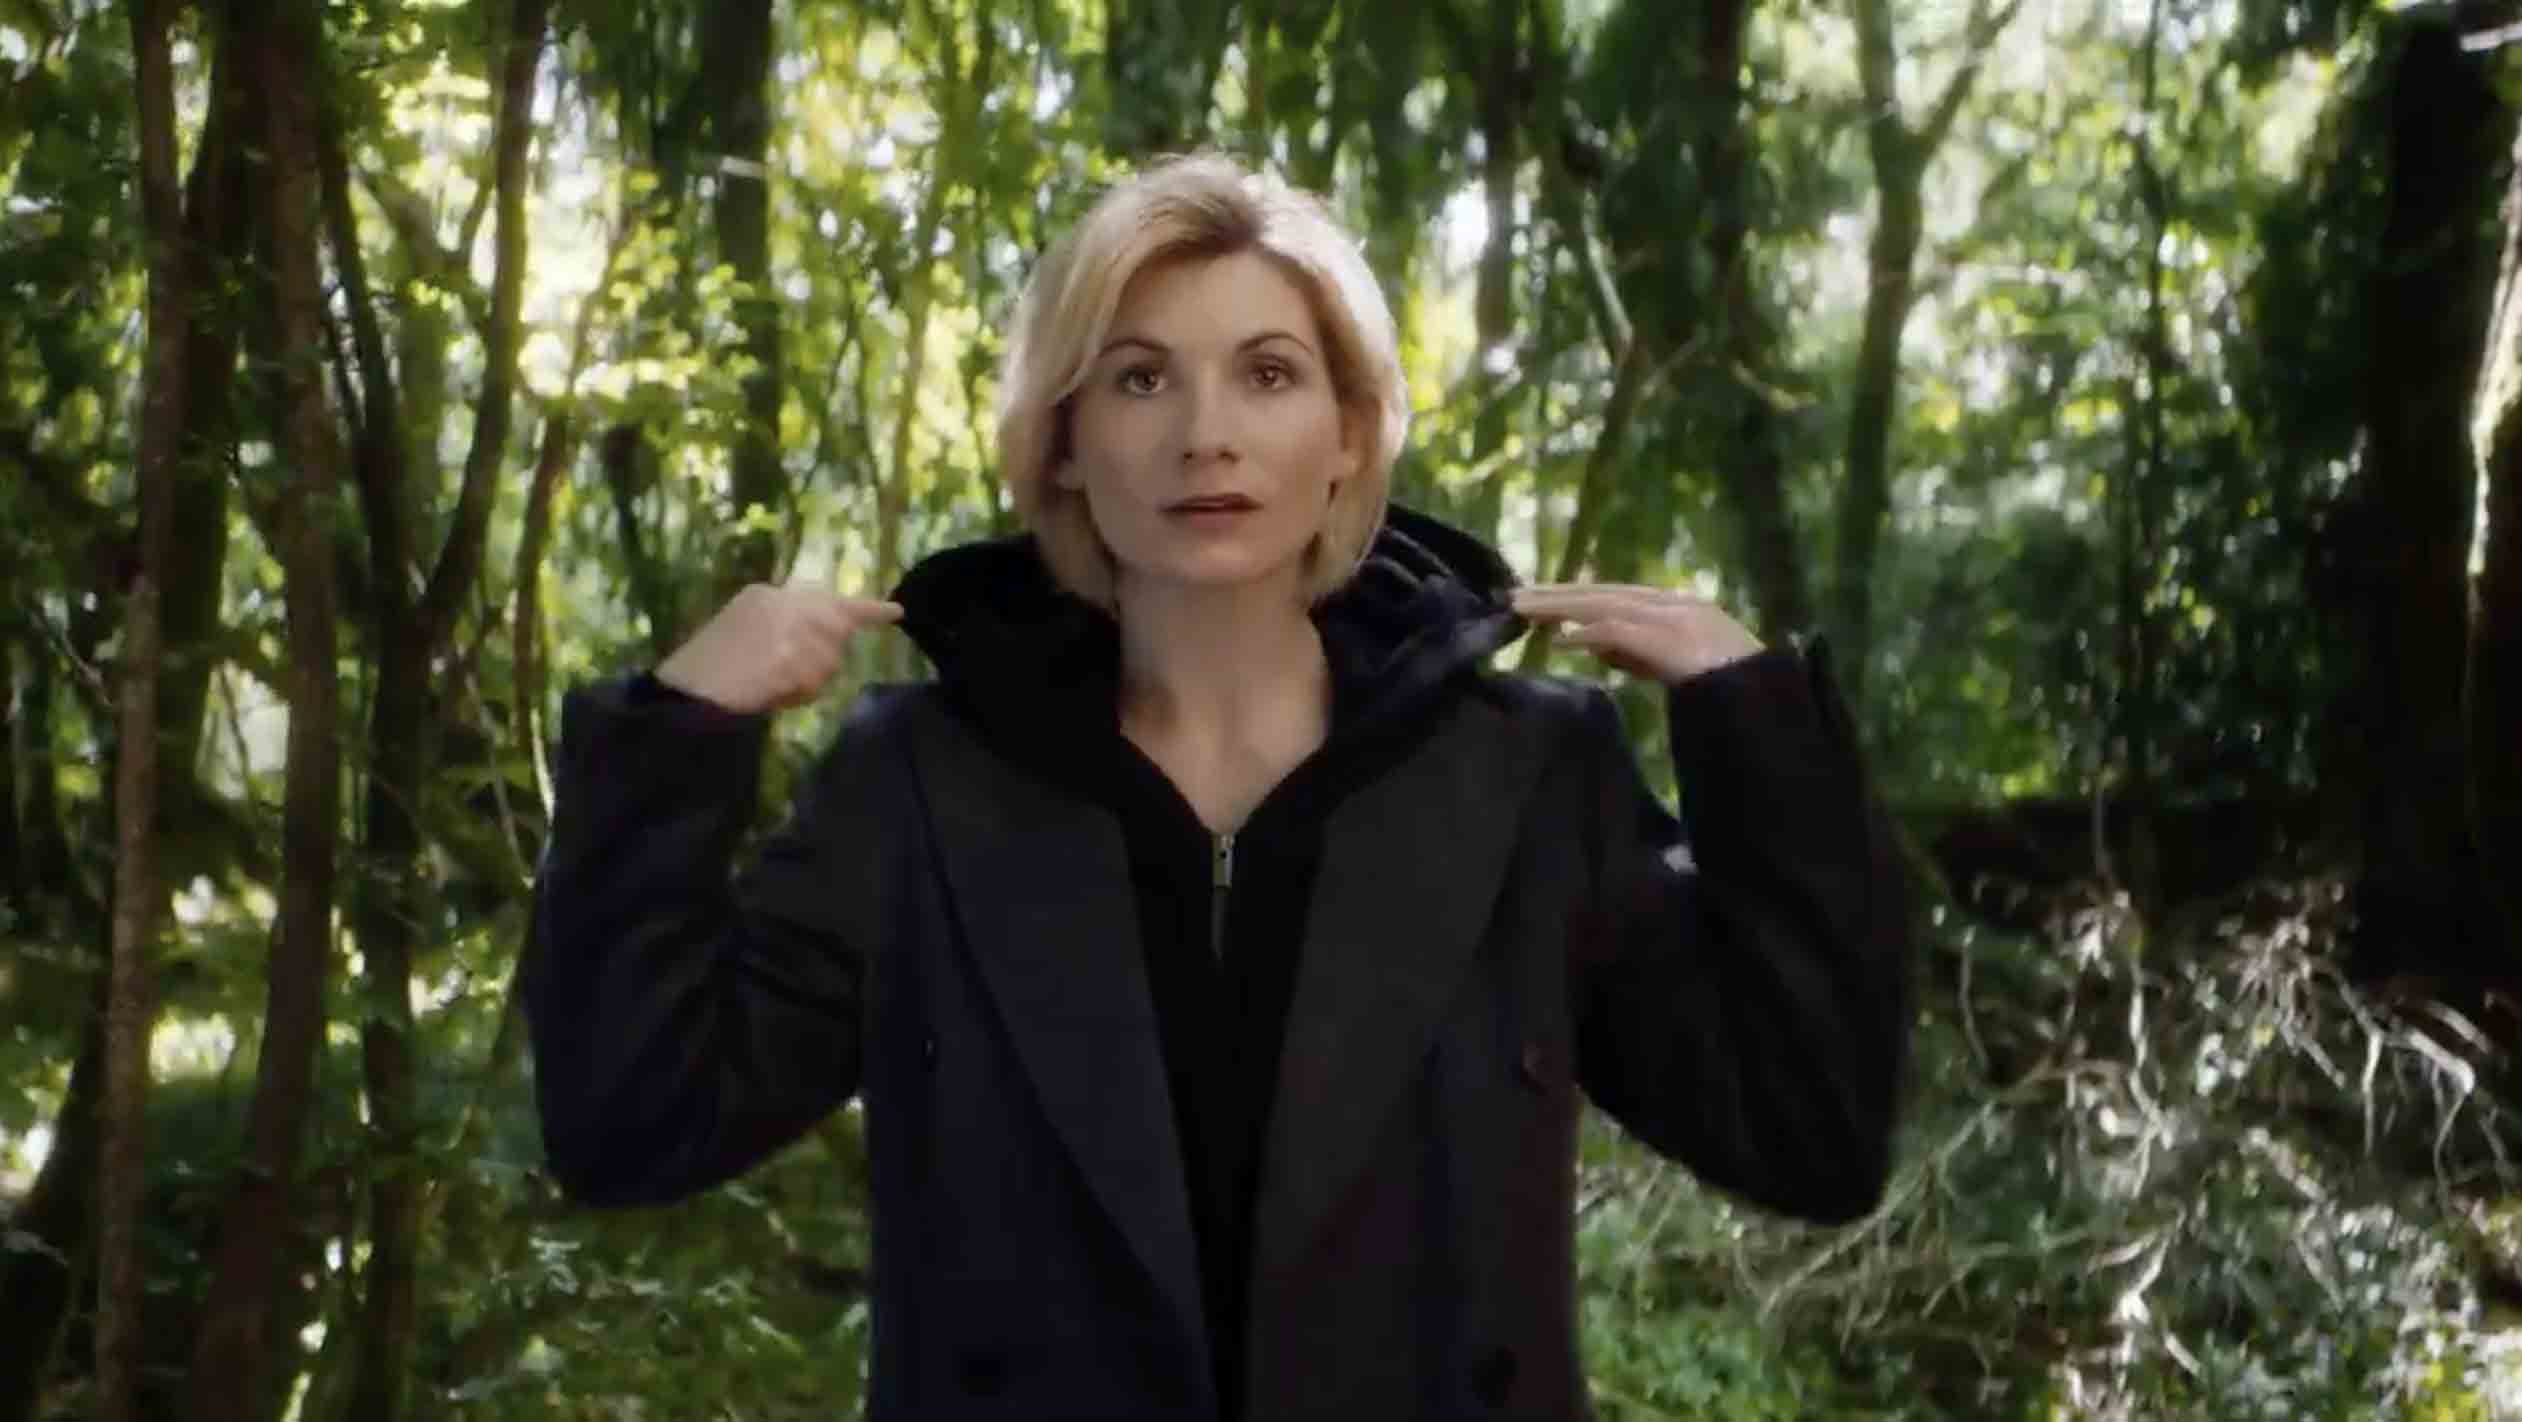 Jodie Whittaker CONFIRMED as the 13th Doctor